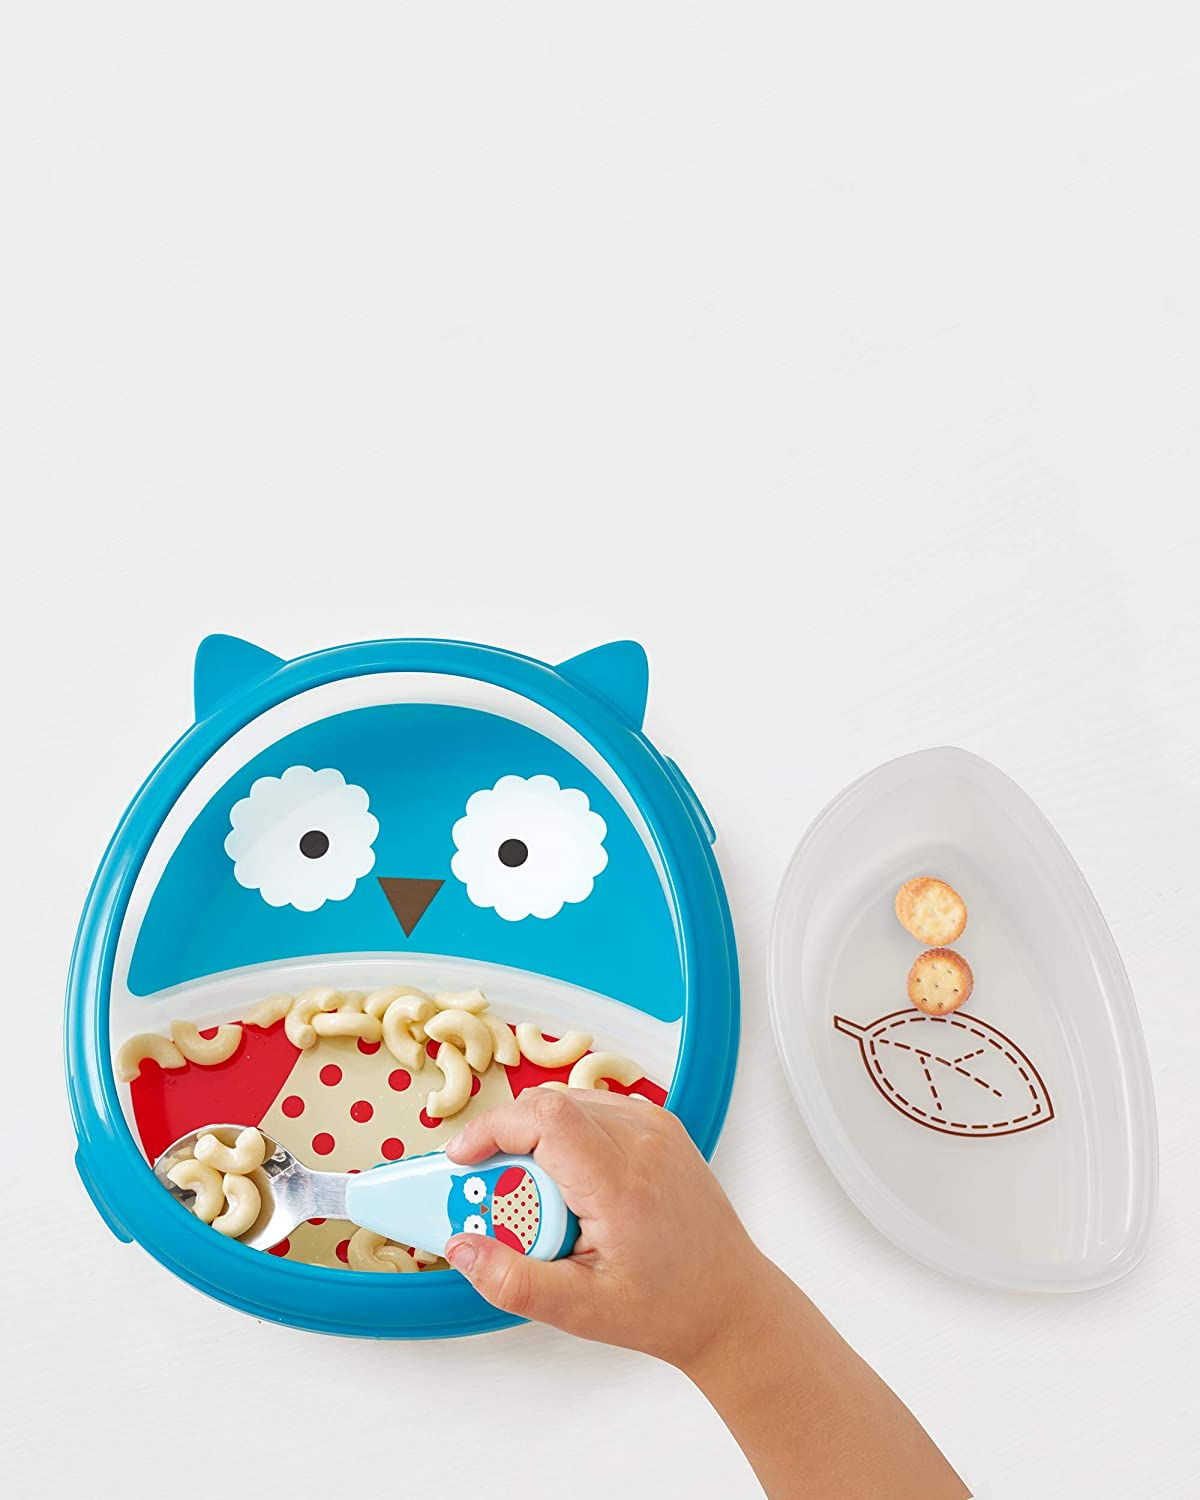 Skip Hop Baby Plate and Bowl Set Blue//Red//White